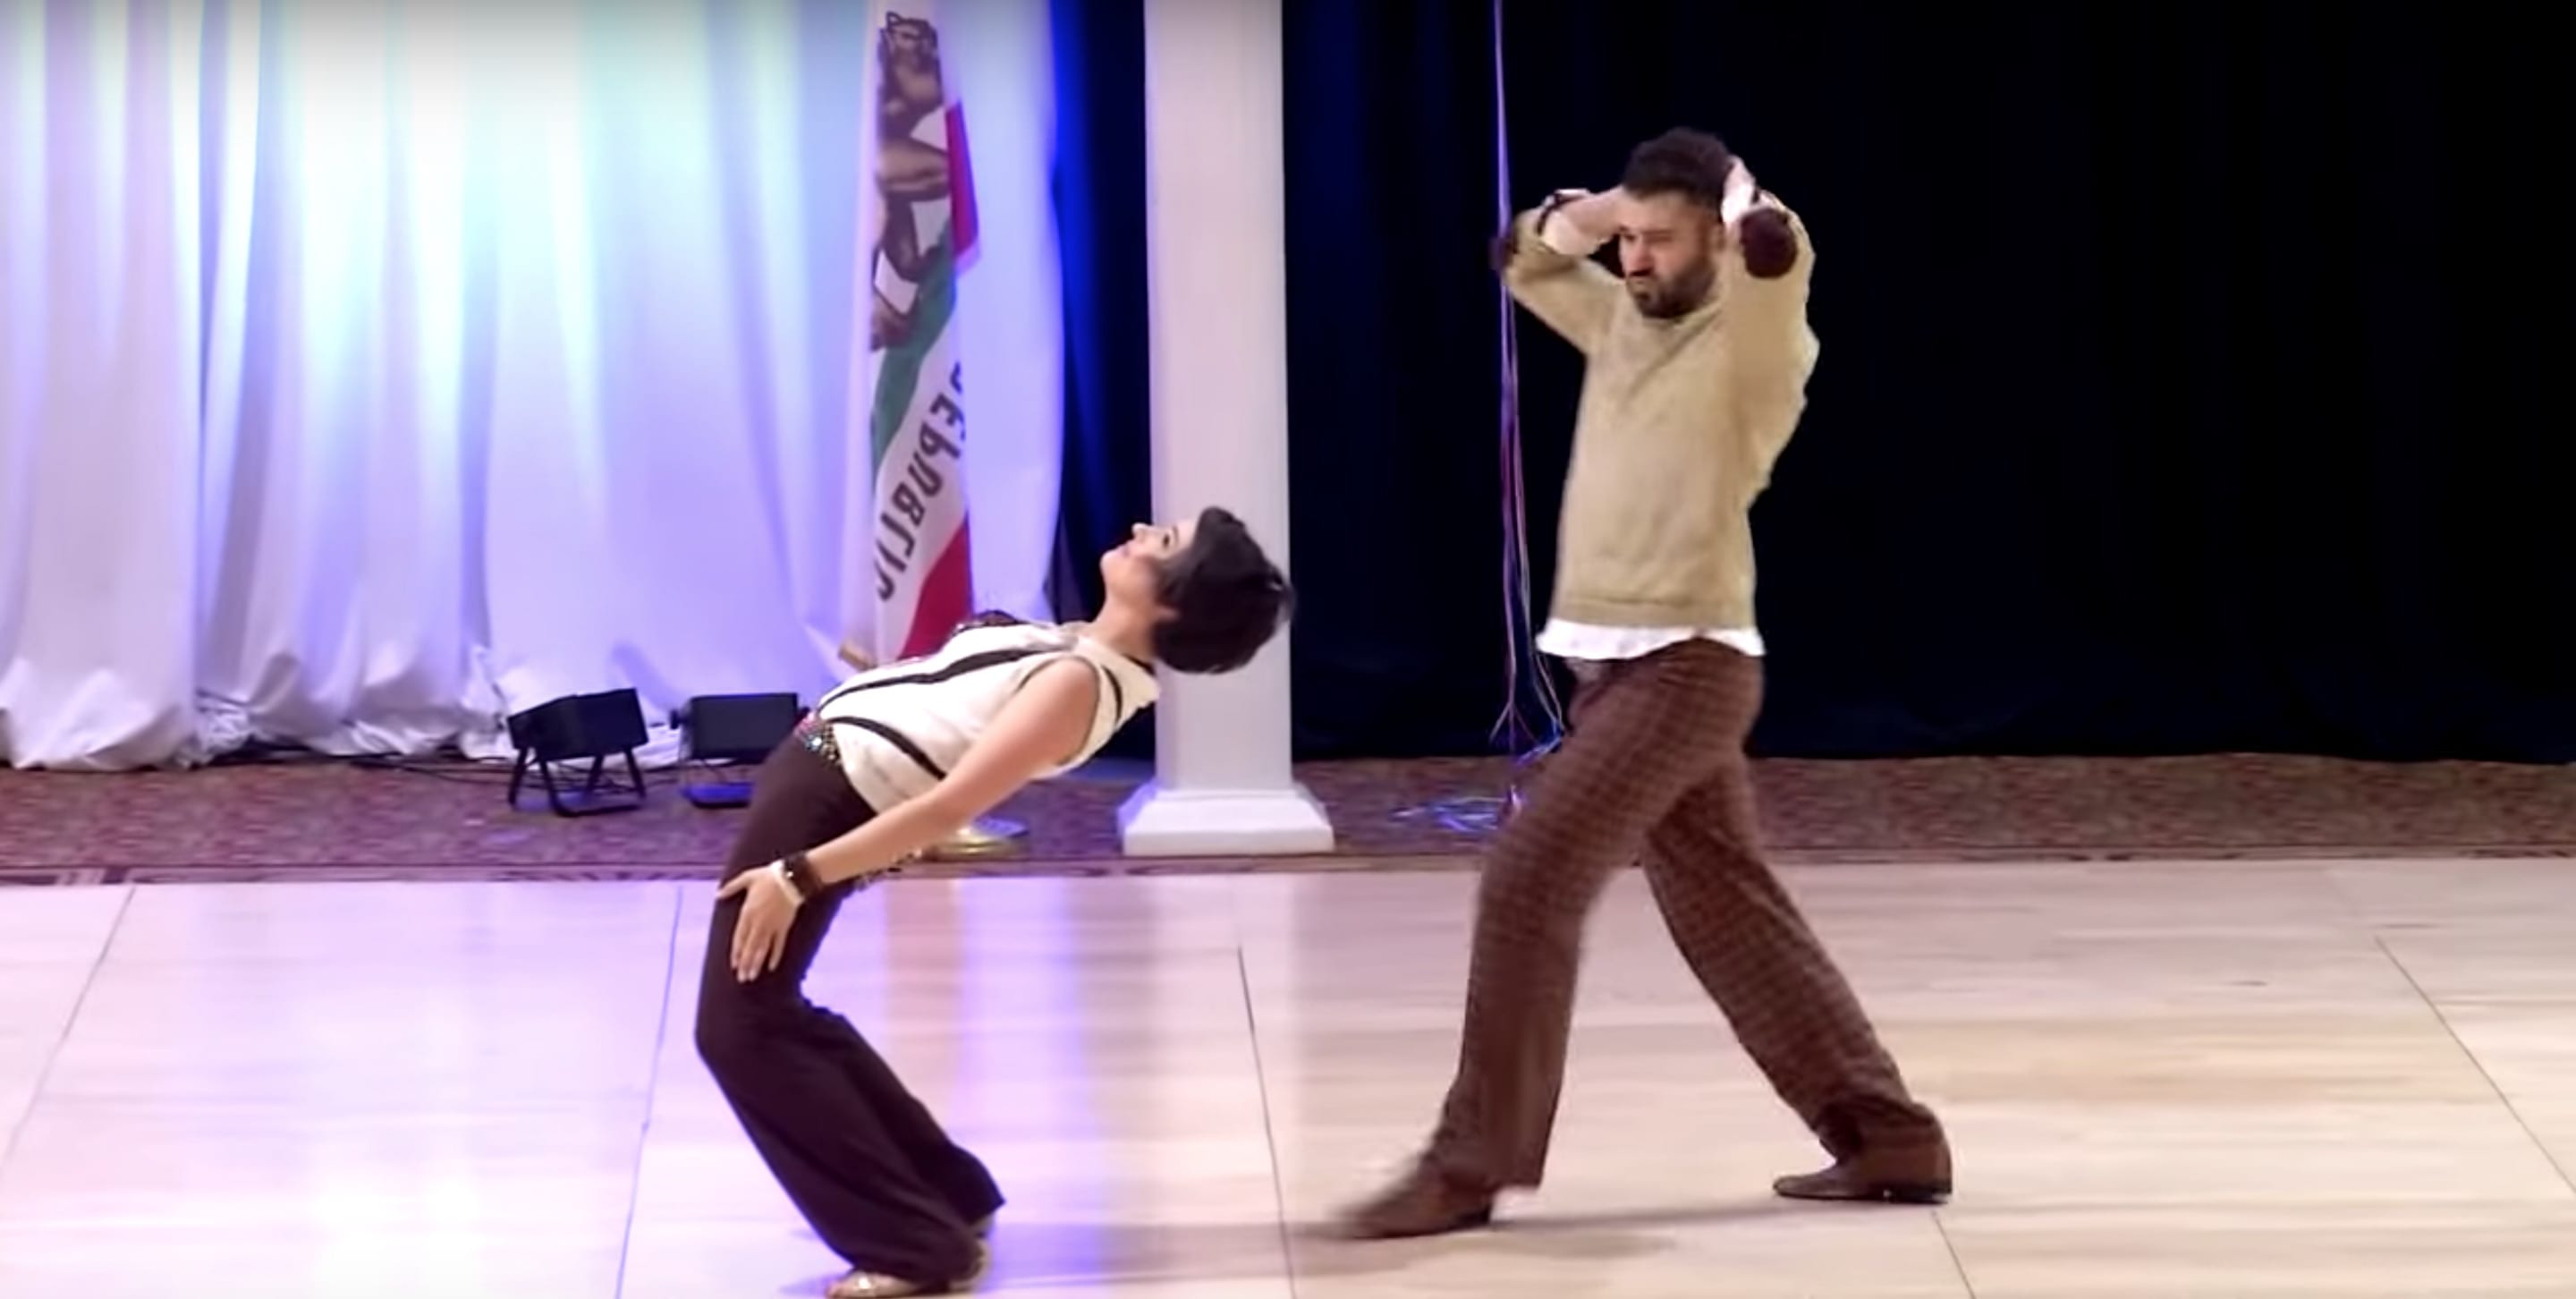 ben-morris-jennifer-deluca-swing-dance